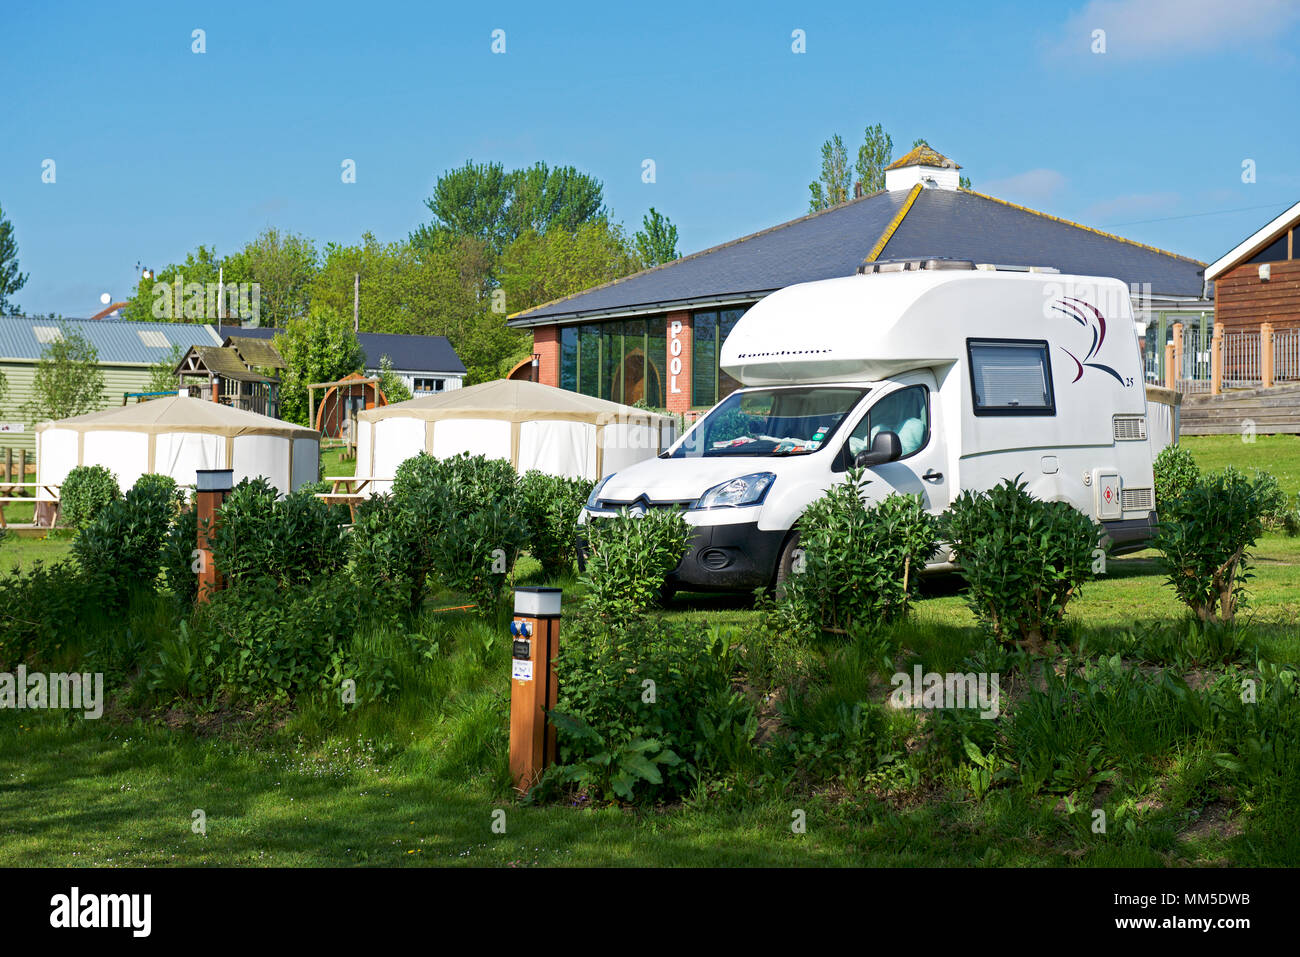 The Waveney River Centre campsite, Burgh St Peter, Norfolk, England UK - Stock Image